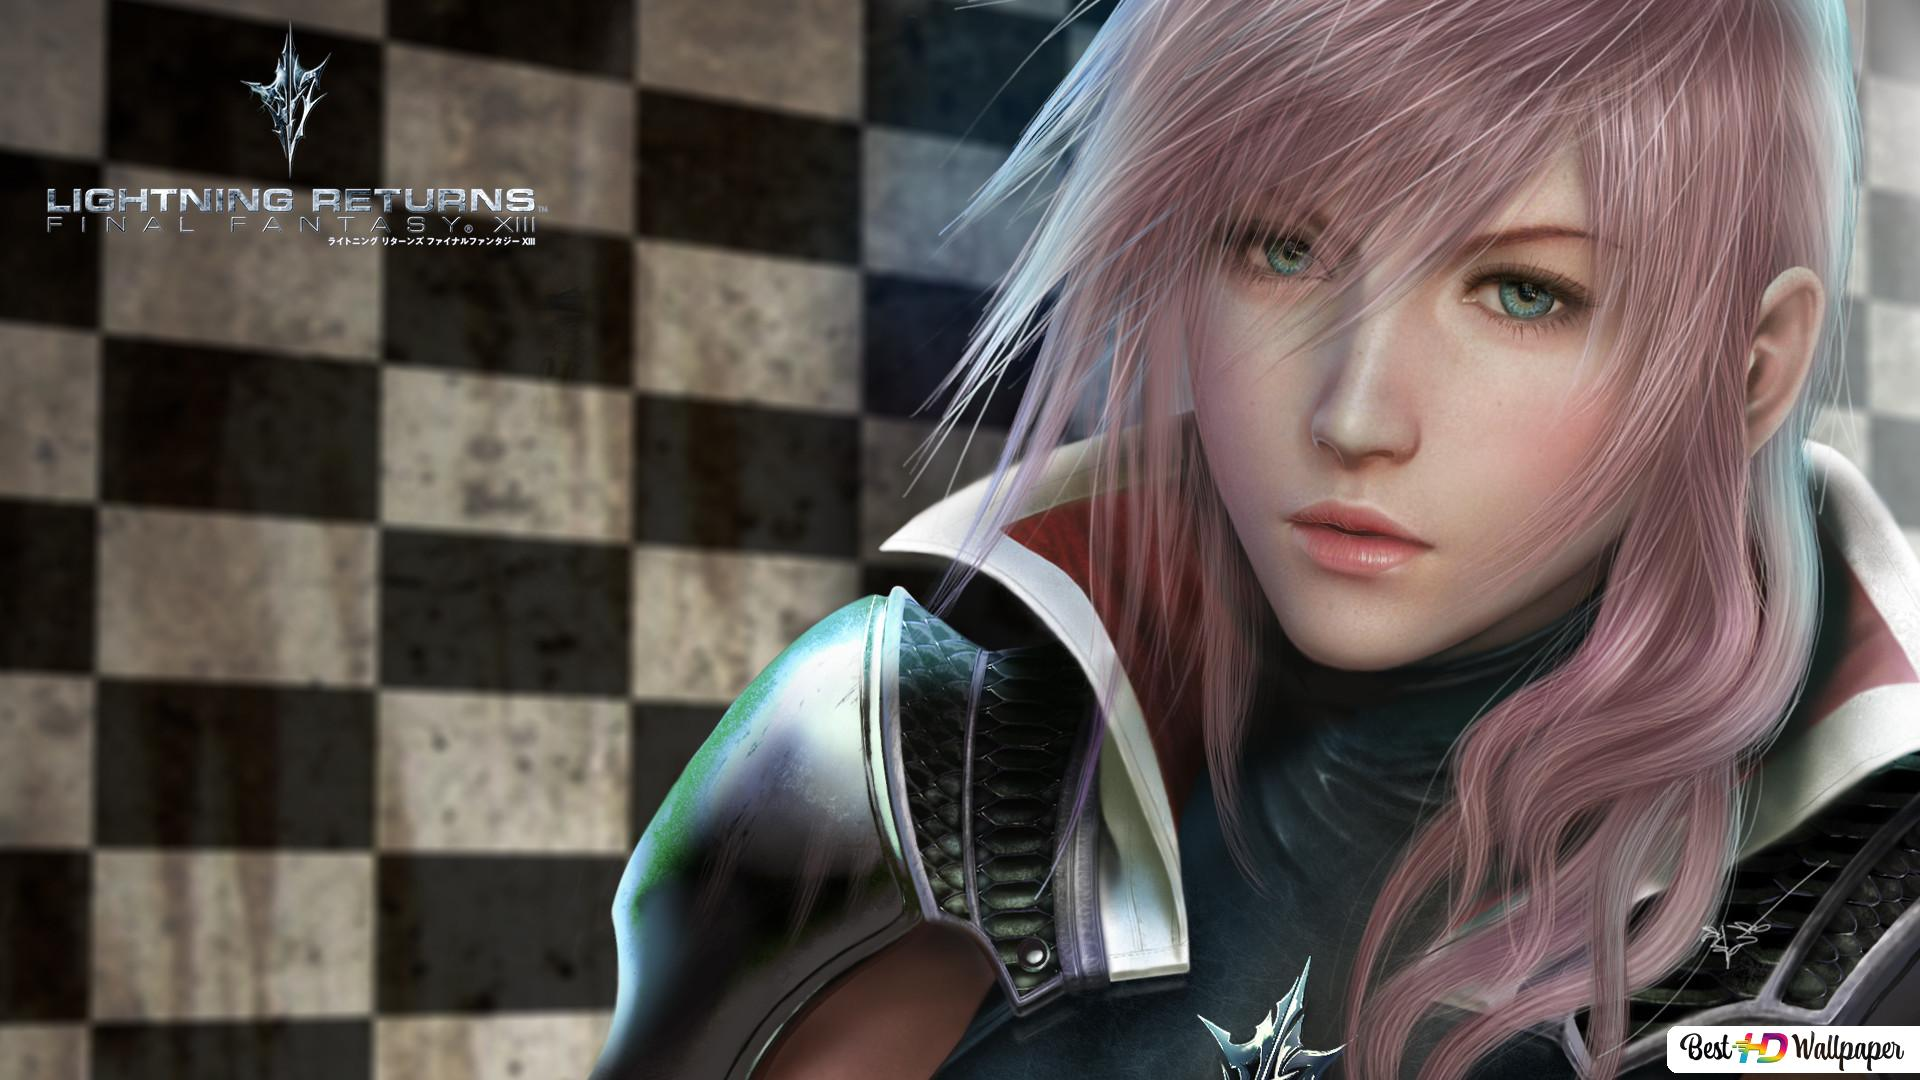 Final Fantasy Lightning Returns Hd Wallpaper Download